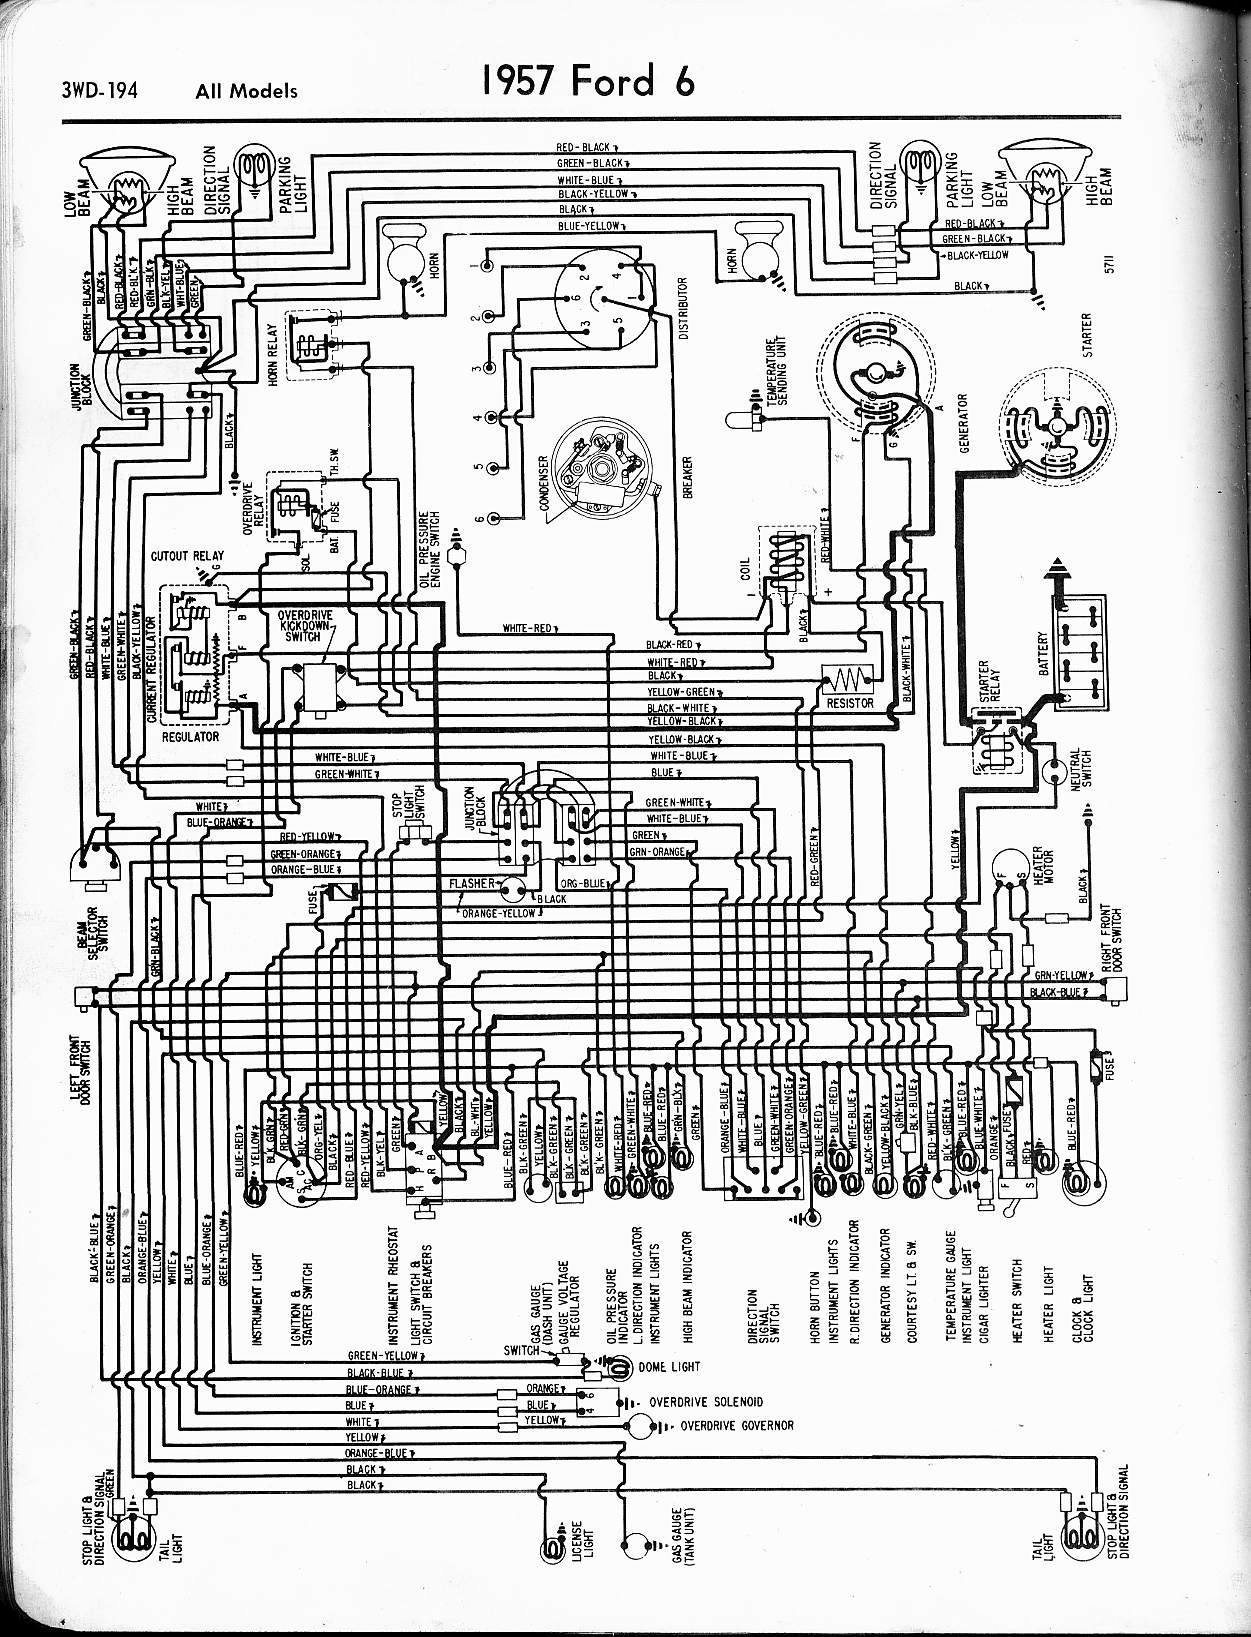 1990 Ford E350 Wiring For Power Seats Library Diagrams